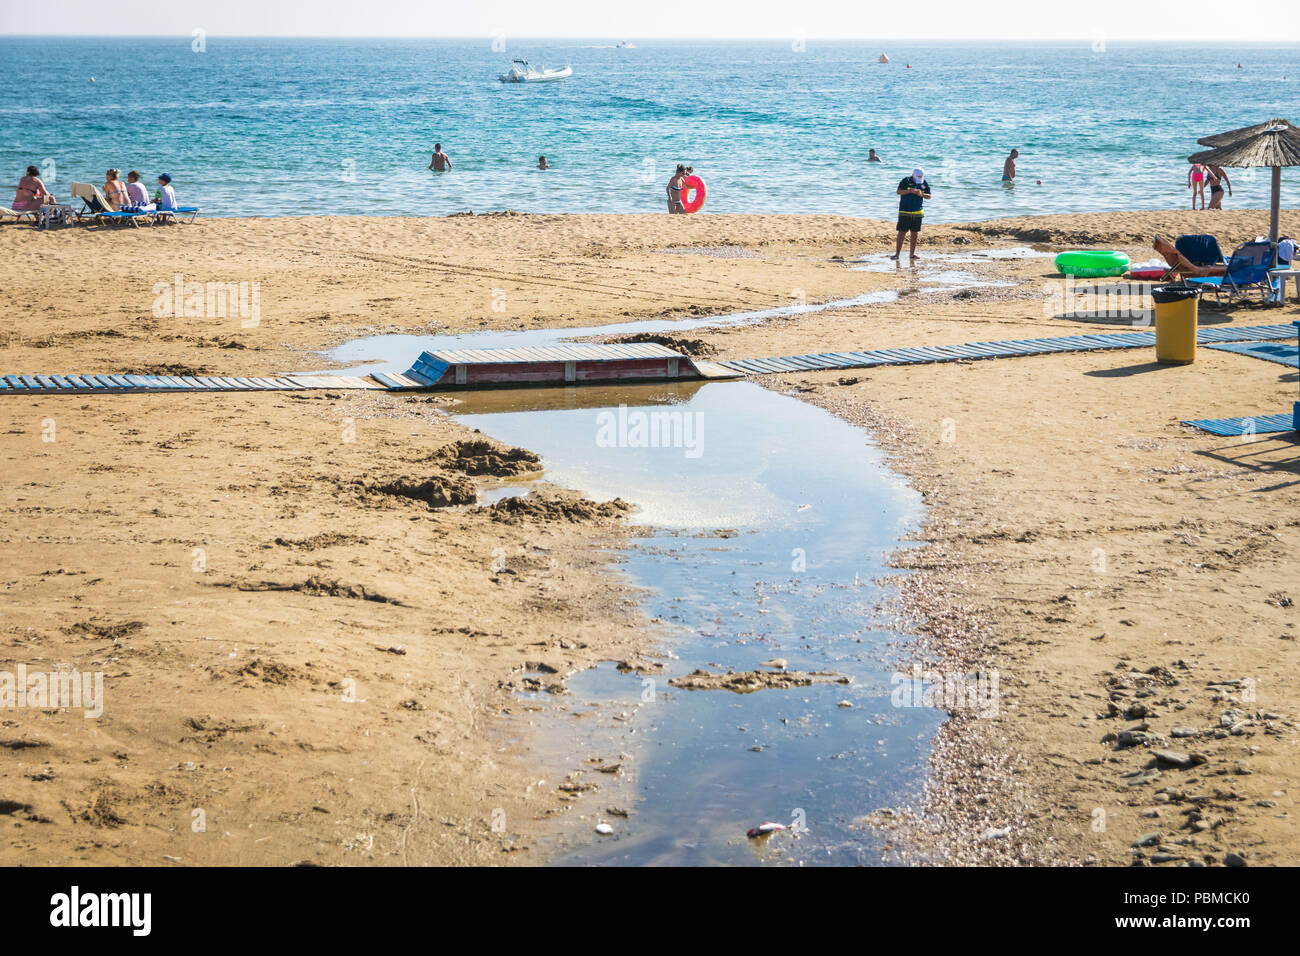 Waste water or raw sewage go directly into sea, ocean. While tourists is on the beach. Dirty beach. - Stock Image